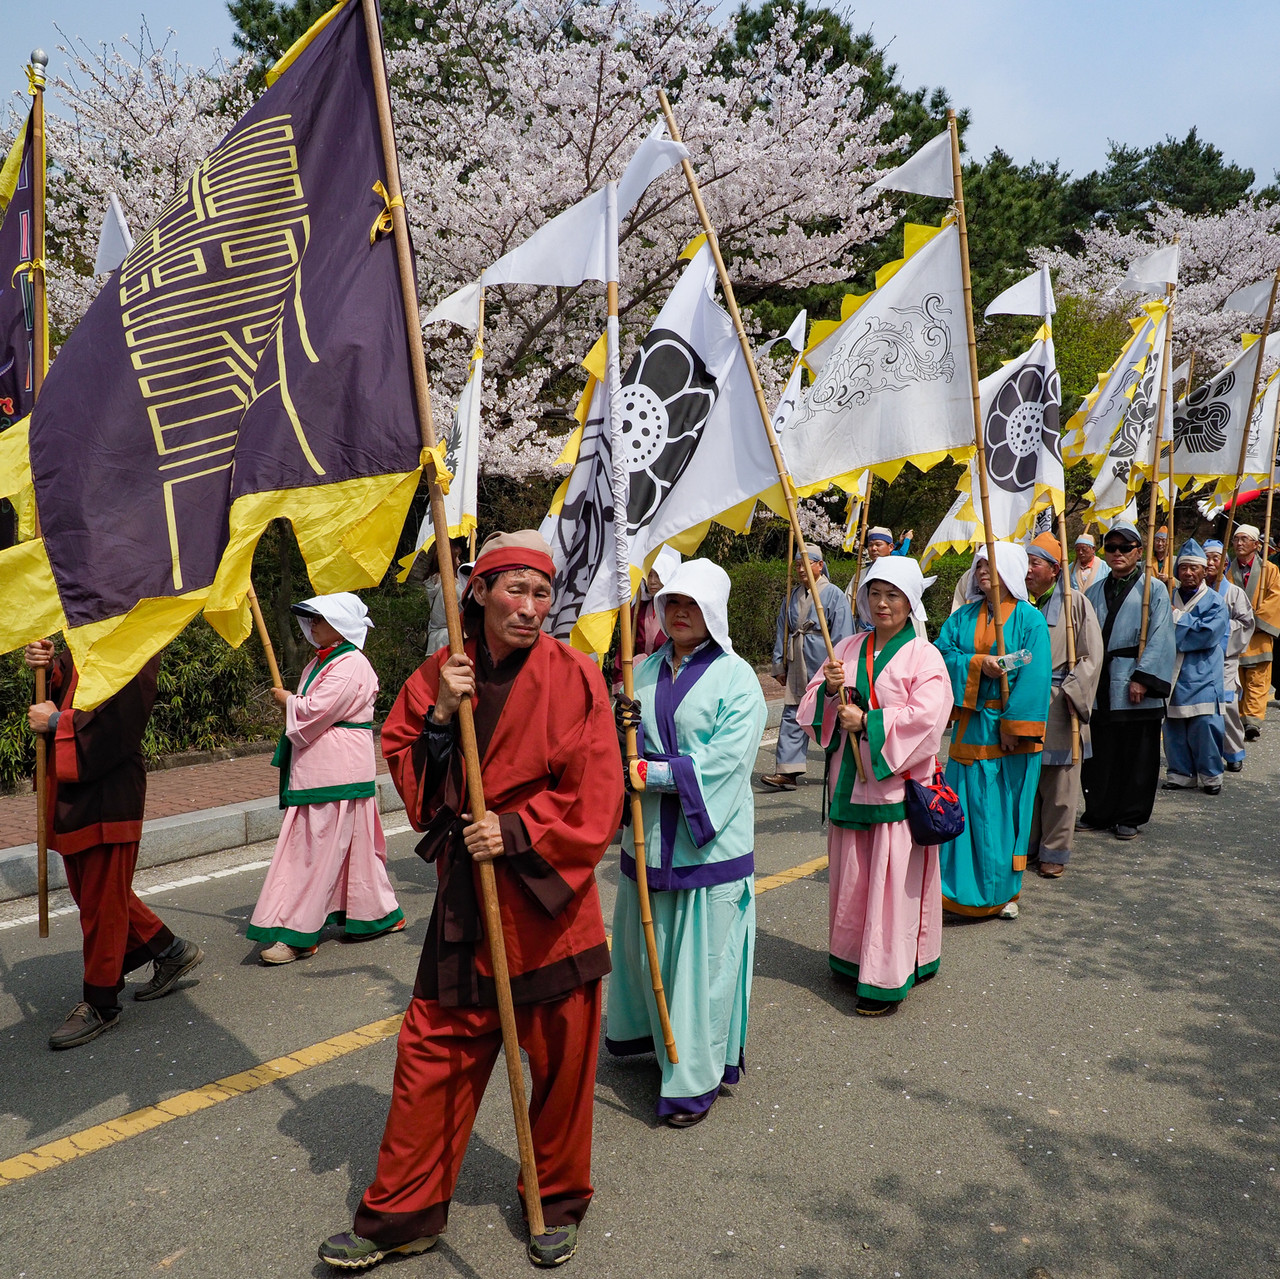 FLAG BEARERS IN TRADITIONAL CLOTHING